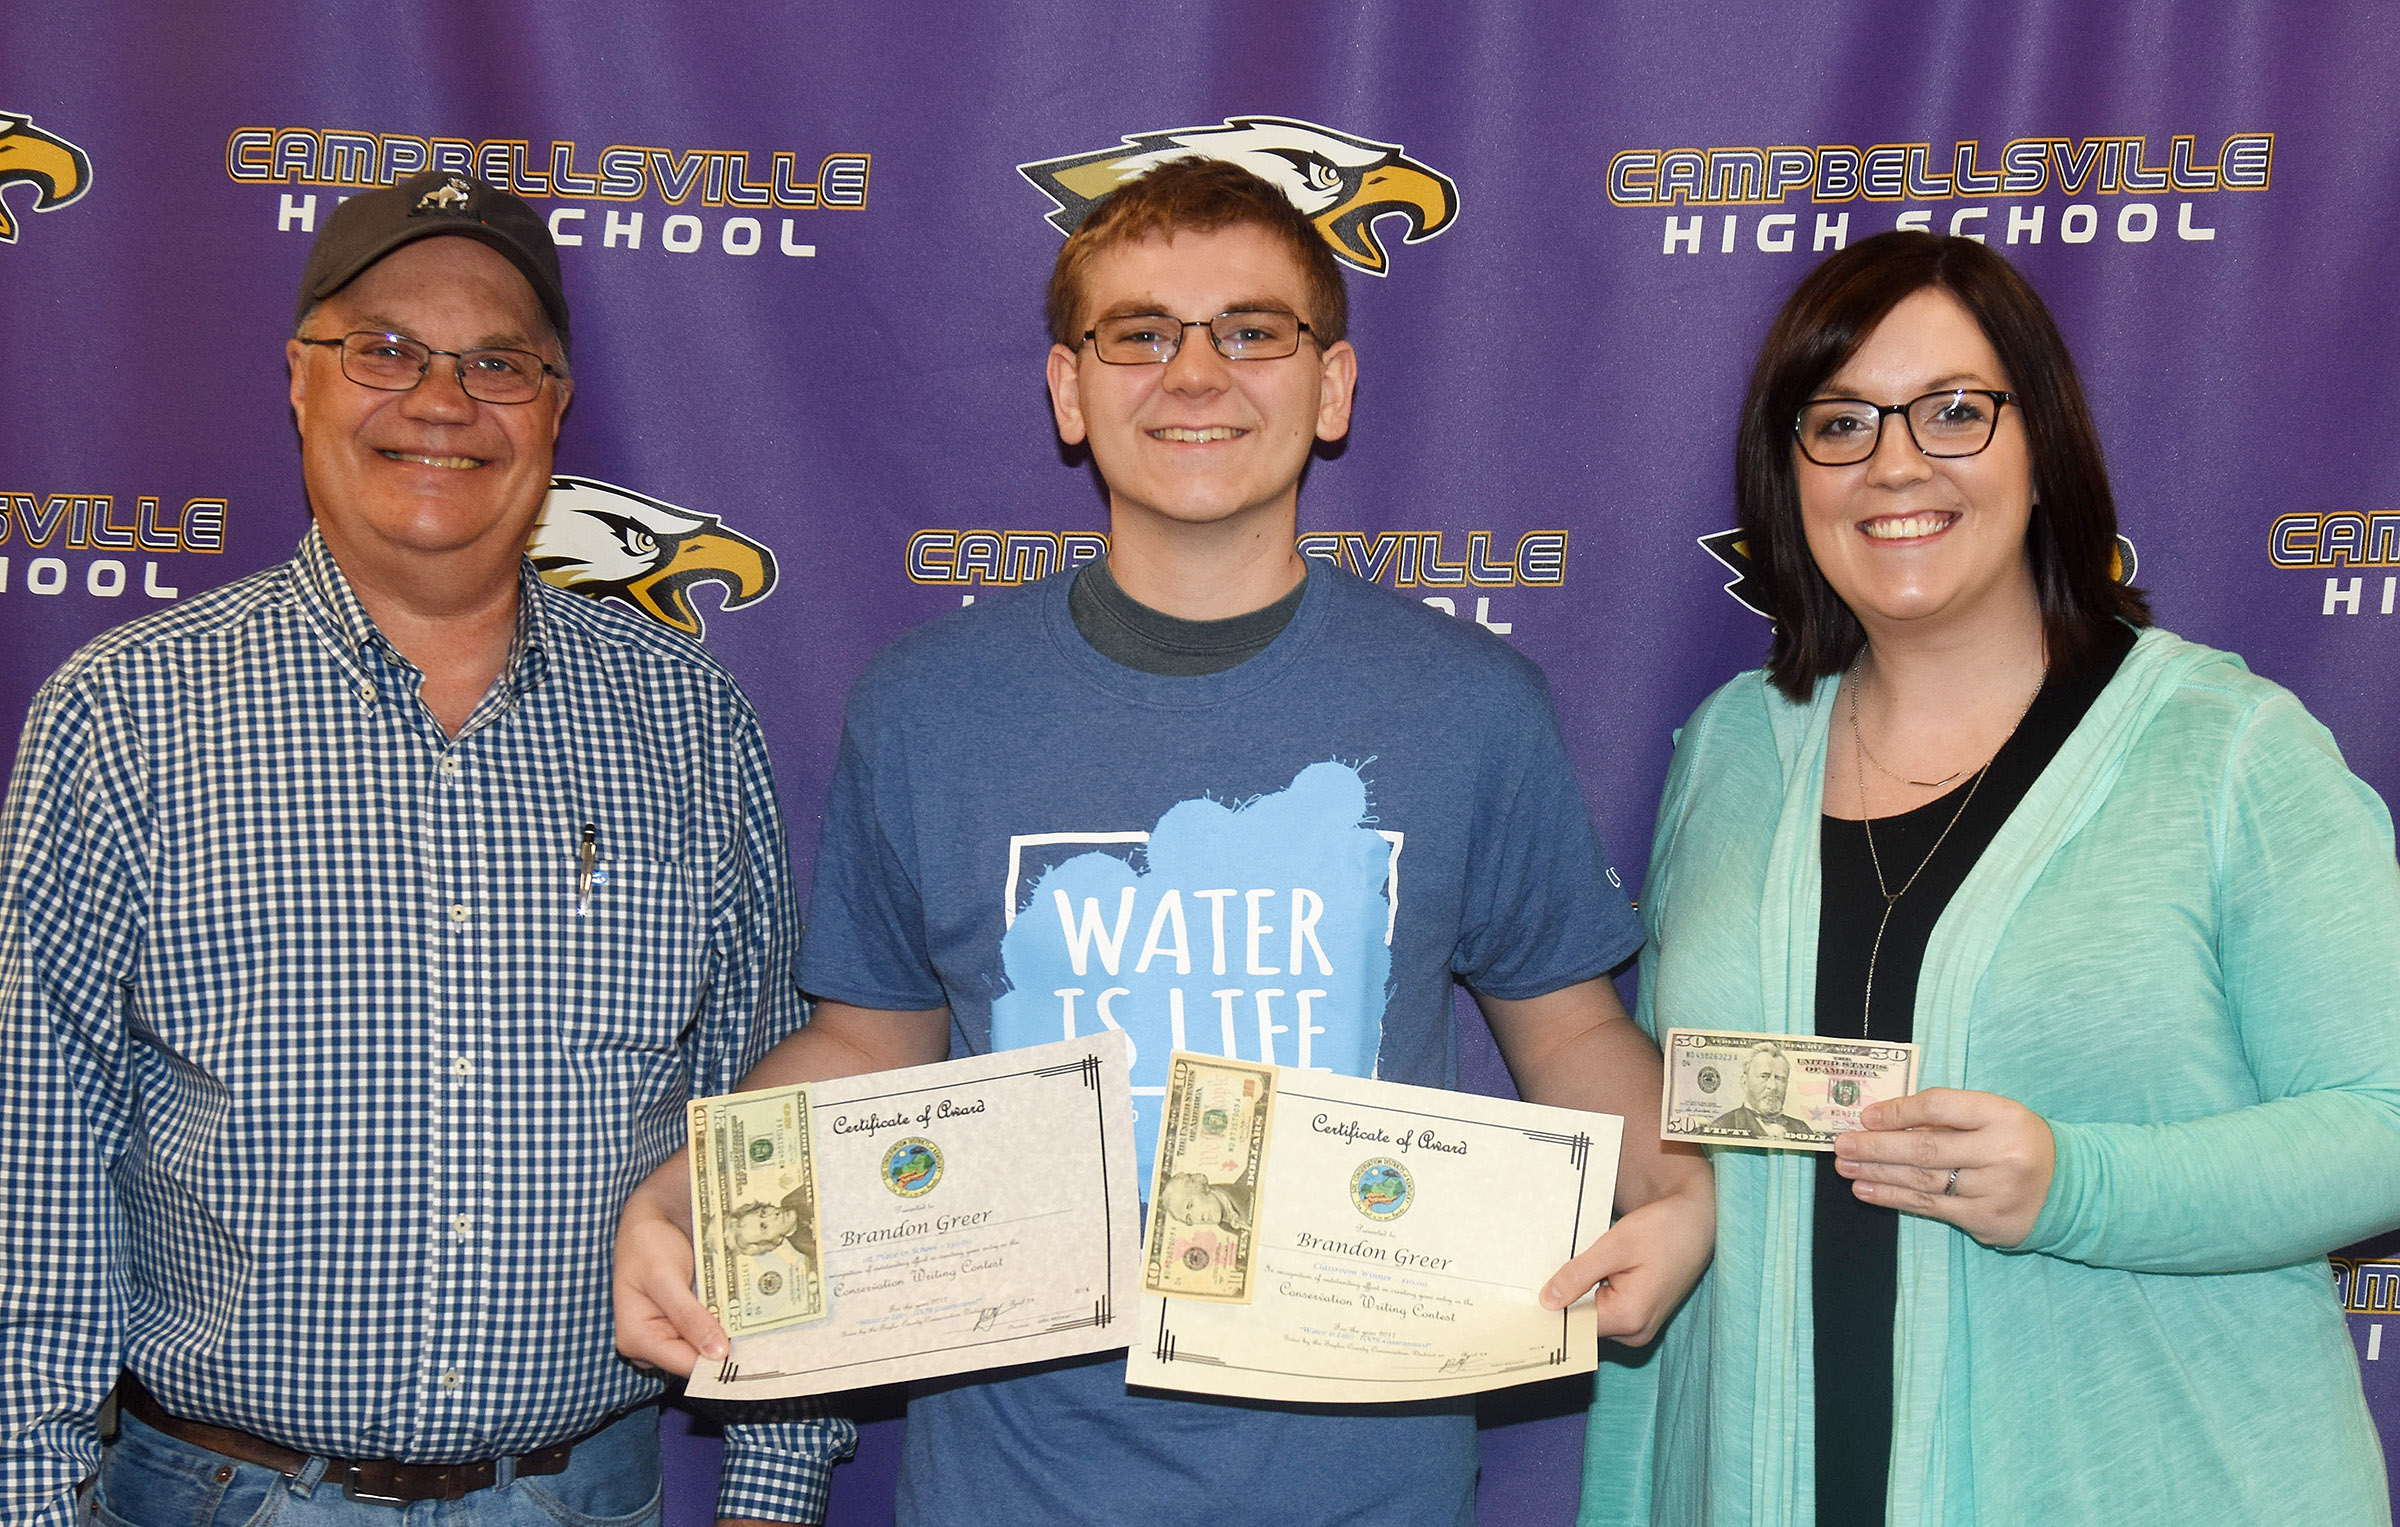 CHS junior Brandon Greer, center, won the Taylor County Conservation District writing contest for his school and received his $40 cash award from Taylor County Conservation District Board Member Barry Smith, at left. Greer's teacher Lindsay Williams won a $50 prize for classroom supplies.